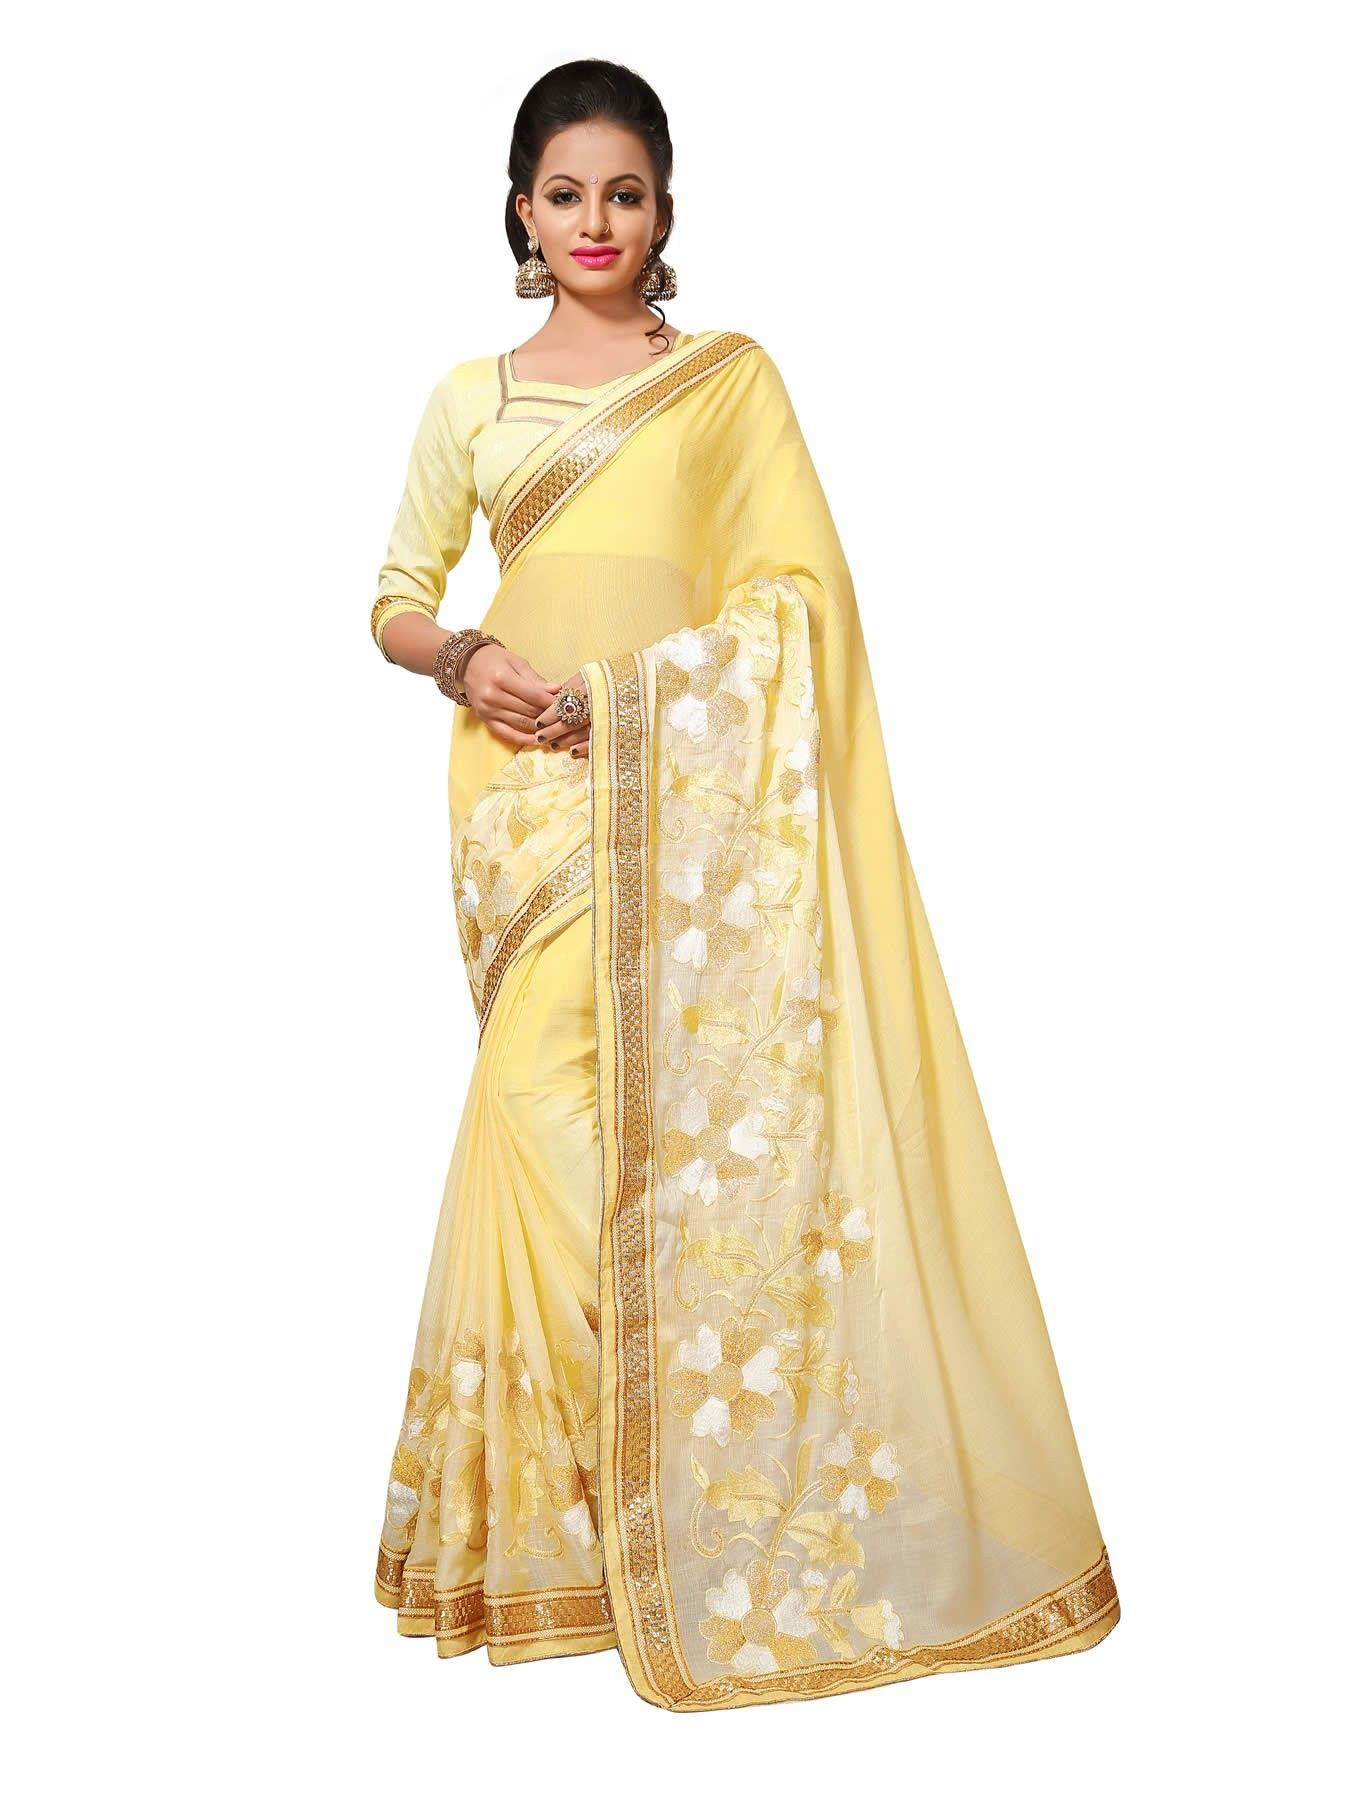 e2e349cc90760f Buy Designer Sarees Light Yellow Colour Chiffon Jari Embrodery Work With  Less Border Saree Buy Saree online UK - Buy Sarees online